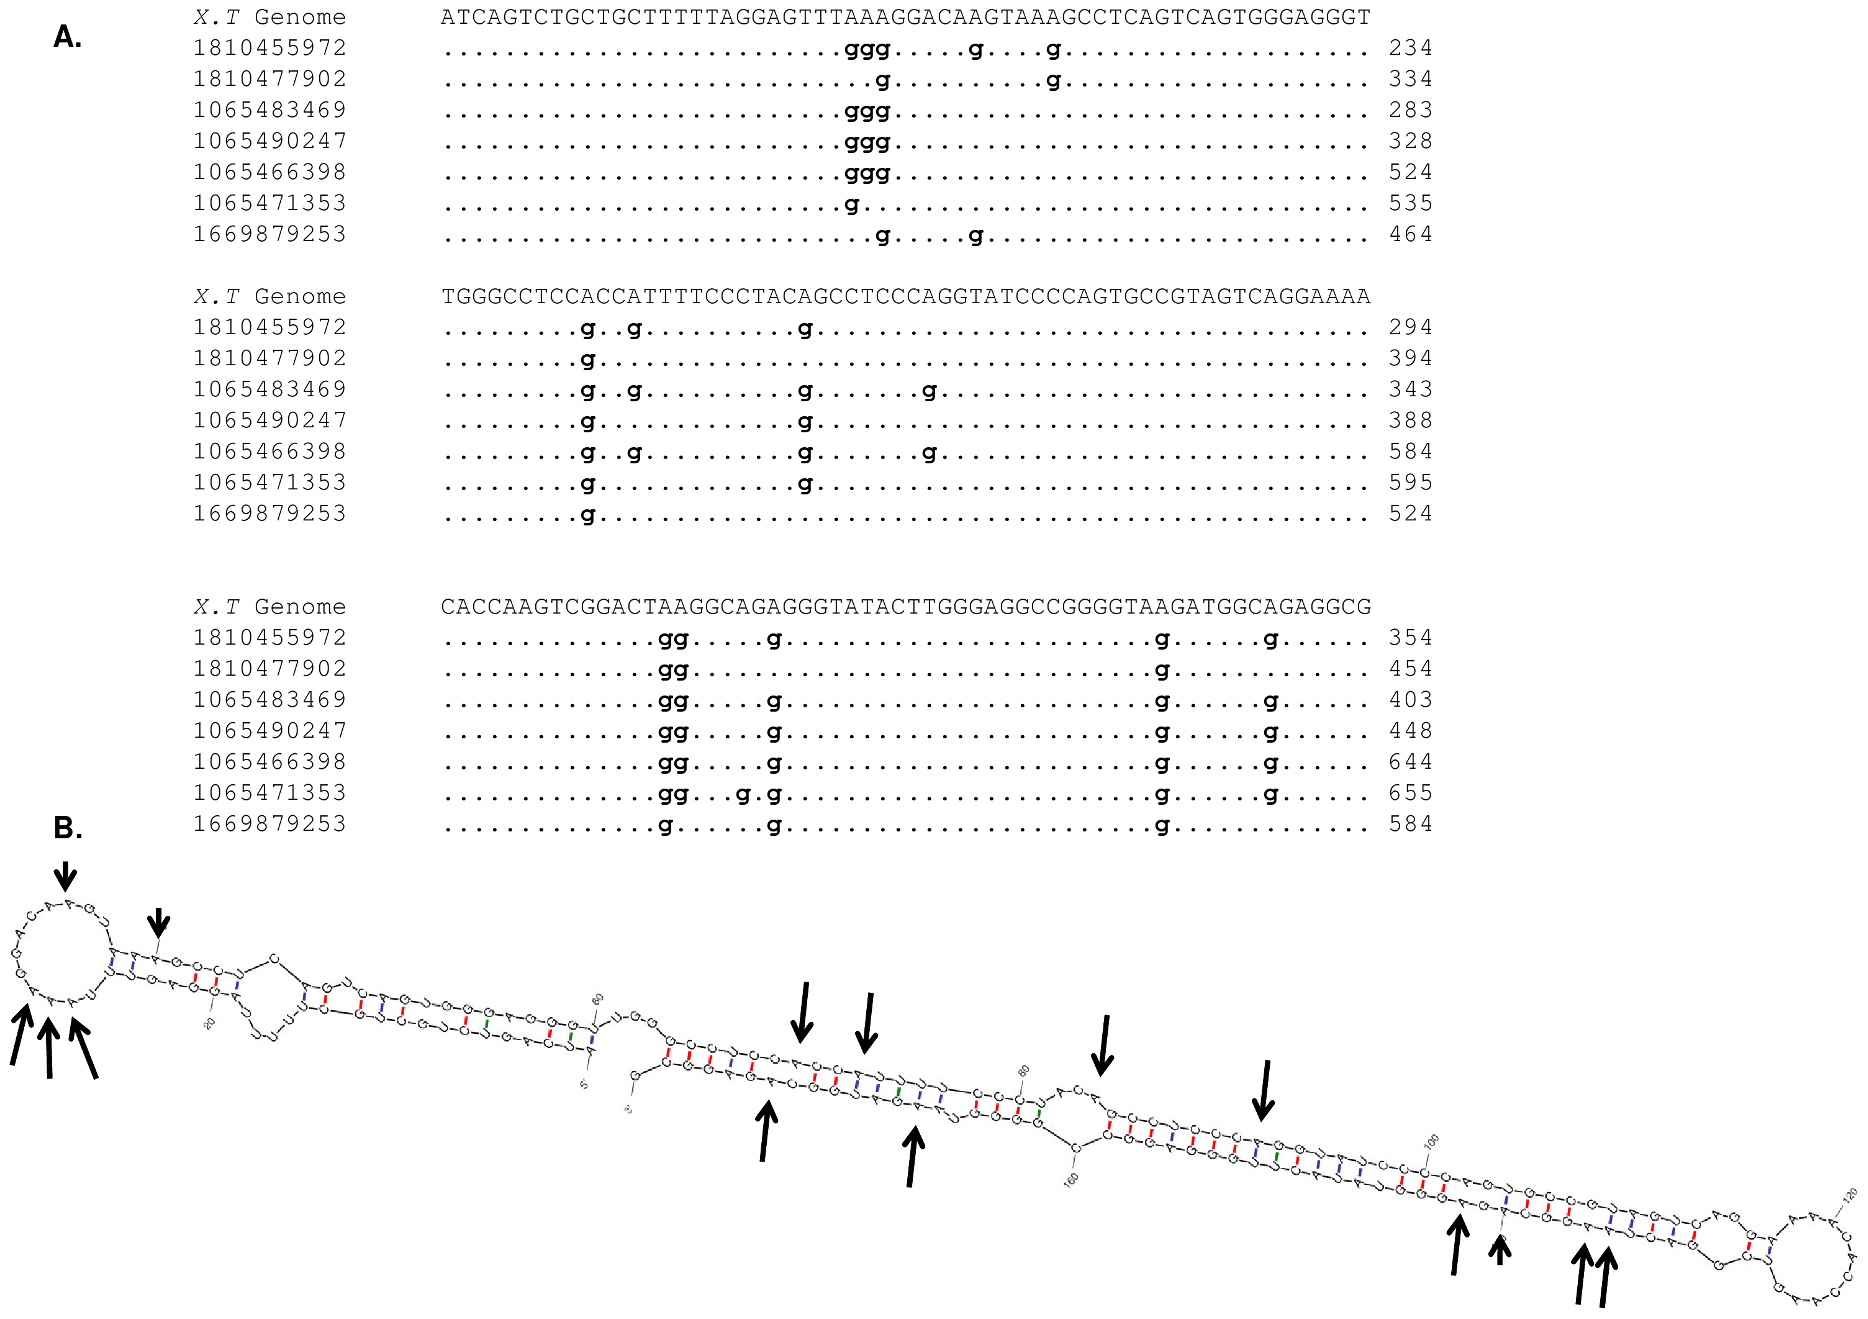 RNA editing in <i>Xenopus tropicalis</i>.